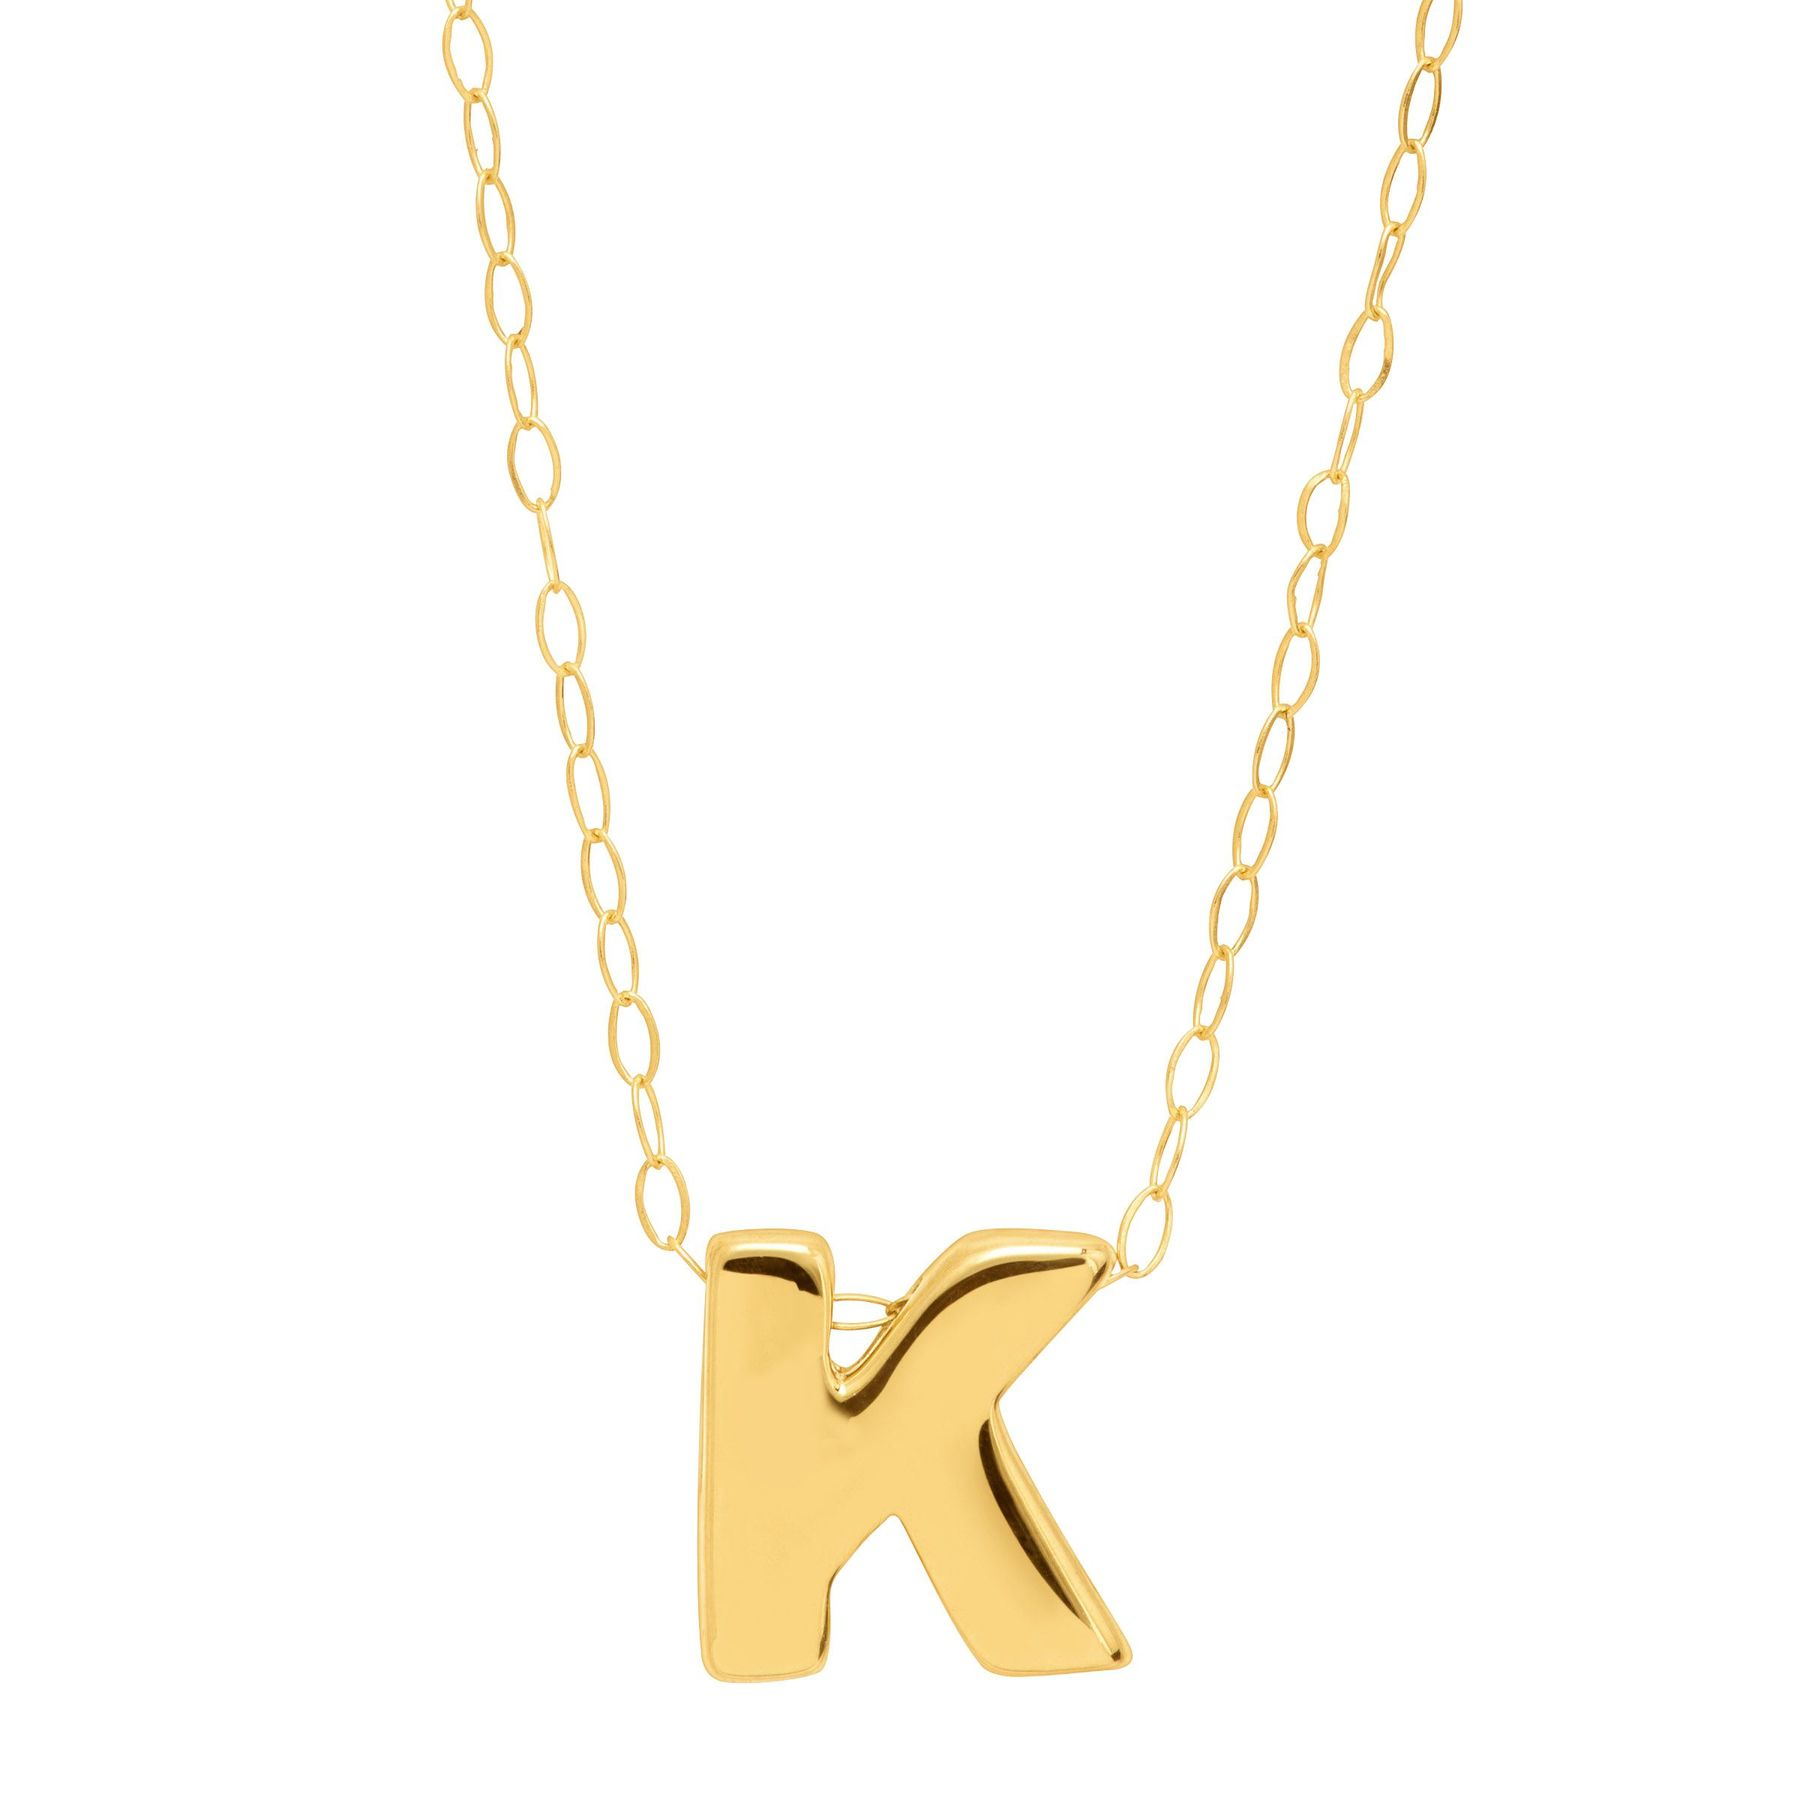 Eternity gold teeny tiny k initial pendant in 10k gold teeny teeny tiny k initial pendant aloadofball Gallery